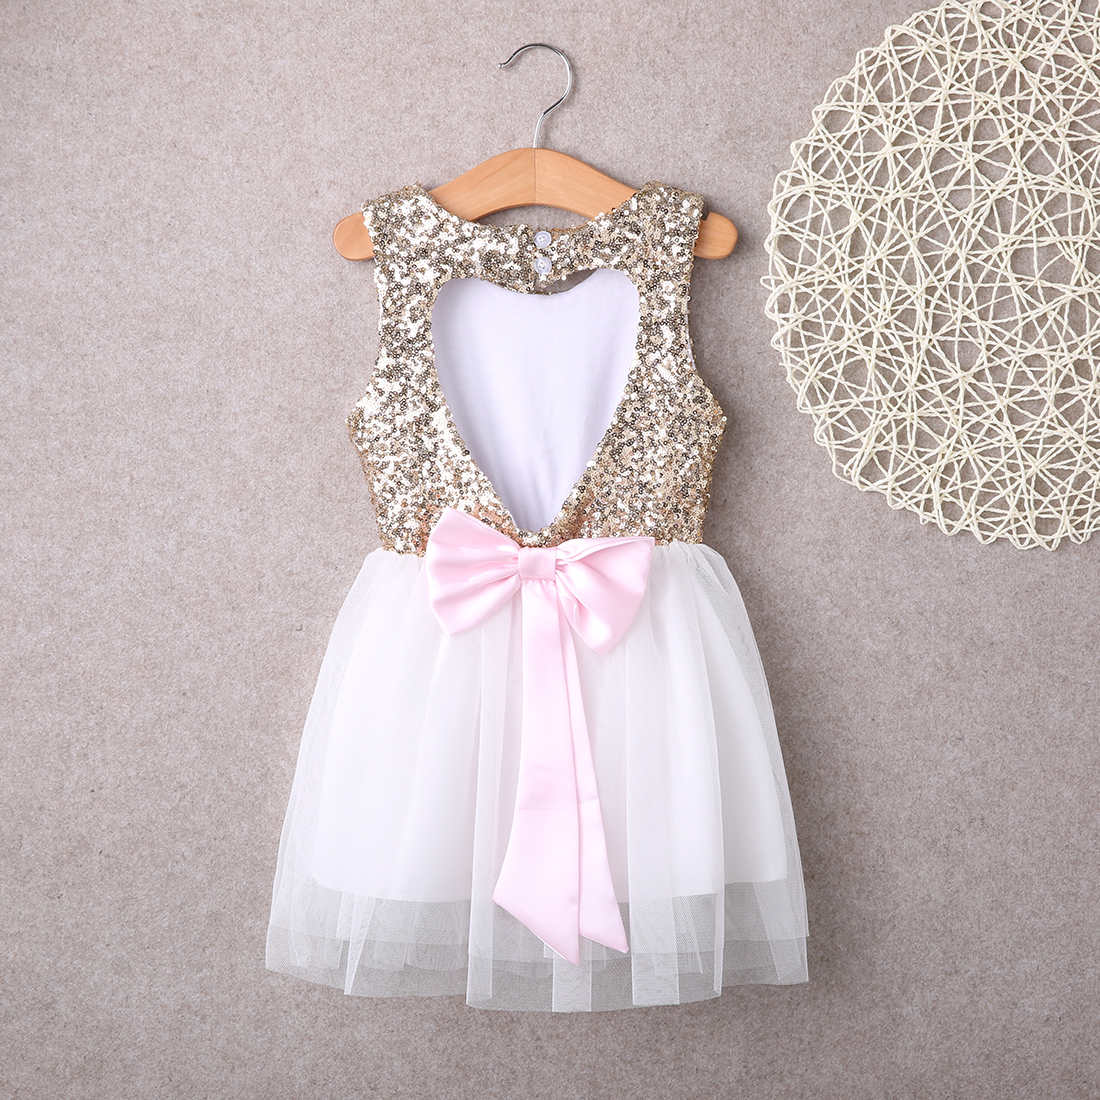 Fashion Children Baby Girls Dress Clothing Sequins Party Mini Ball Formal Love Backless Princess Bow Birthday Gown Dresses children s clothing new 2016 sleeveless bow striped princess dress ball gown formal flower girls dresses